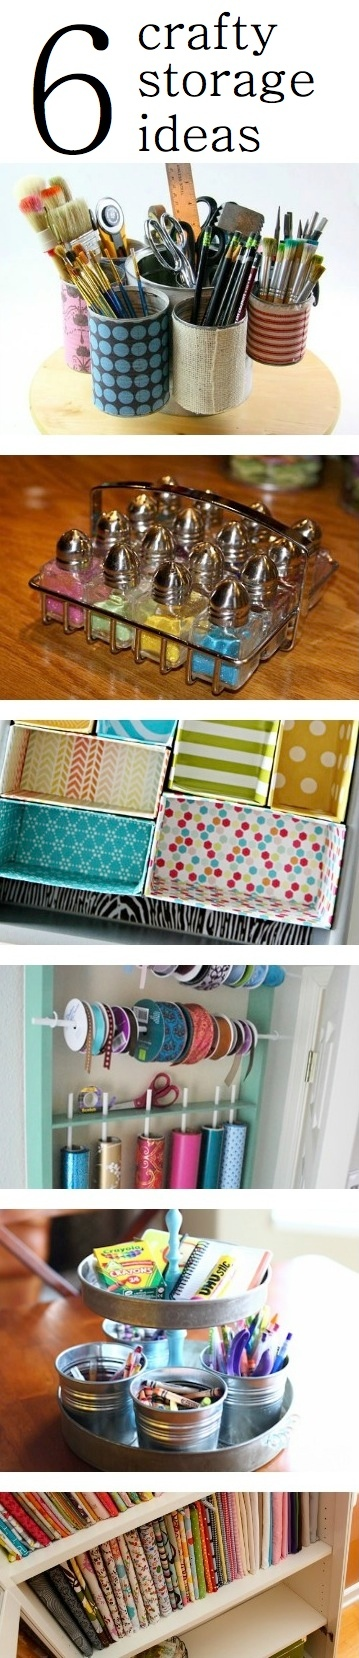 6 Crafty Organizing Ideas